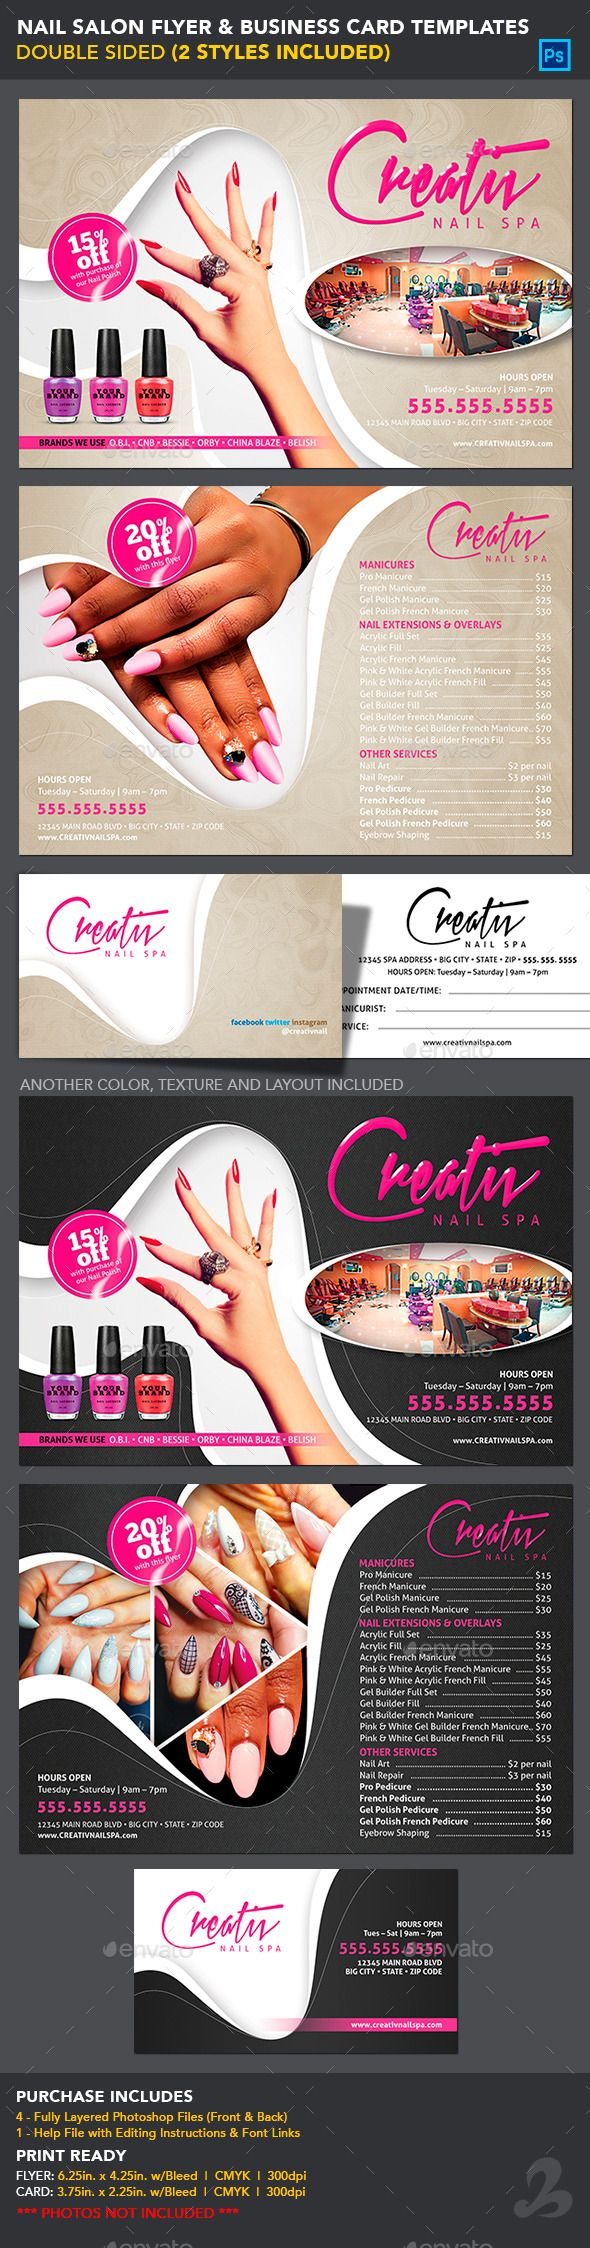 Use this flyer for any promotional, marketing, salon, spa, nail polish, artistic or cosmetic services. FULLY EDITABLE: Easily change colors, text, fonts and design elements to suit your needs.  PURCHASE INCLUDES:   4 PRINT READY Fully Layered PHOTOSHOP FILES